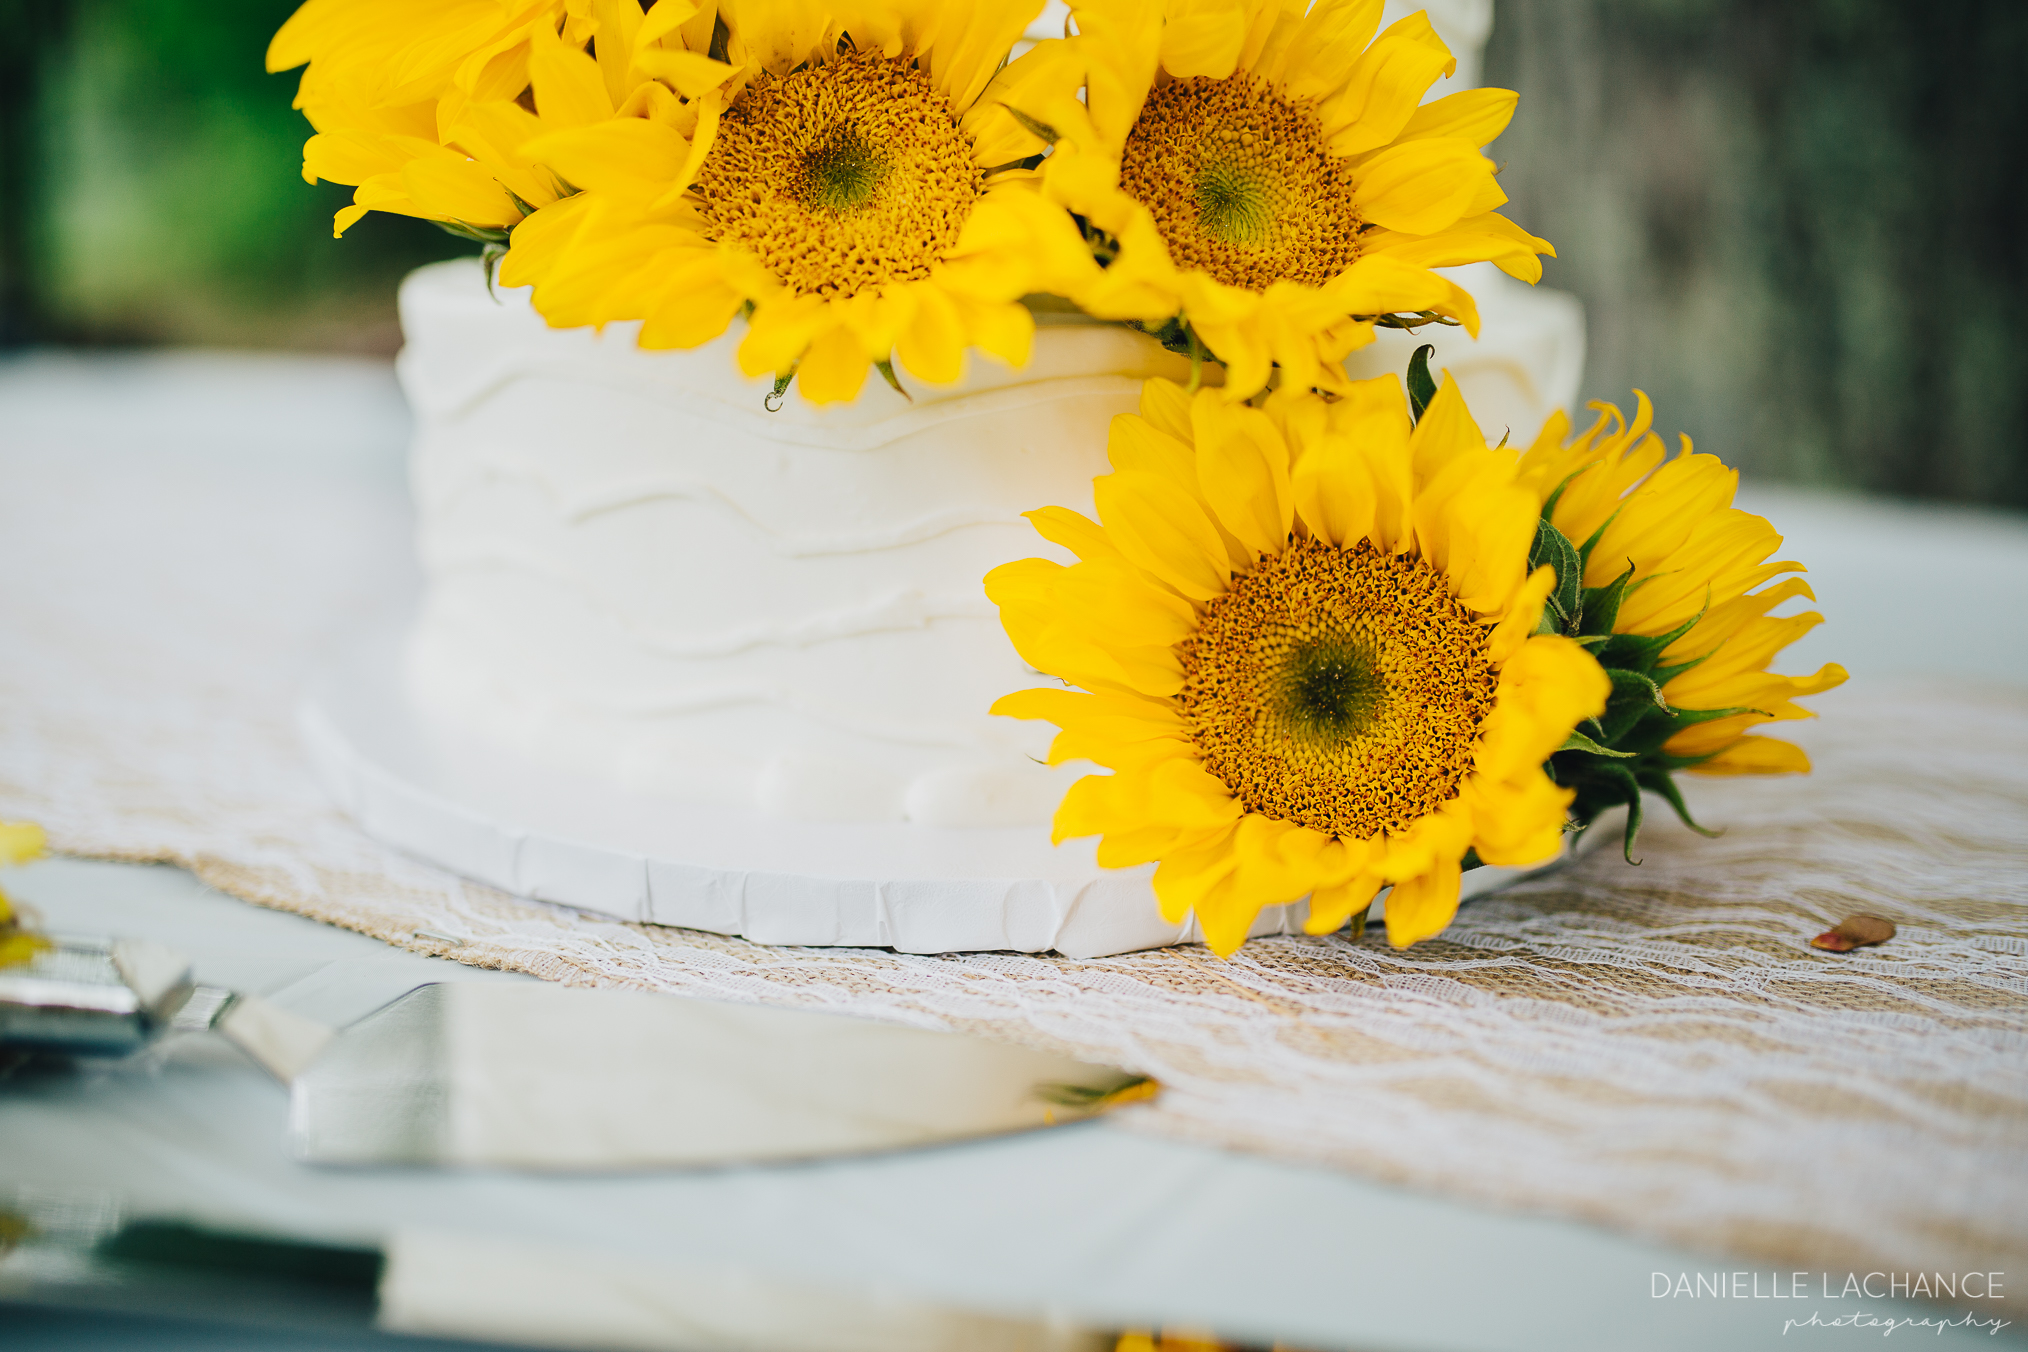 maine-wedding-photographer-details-cake-southern-maine-sunflowers.jpg